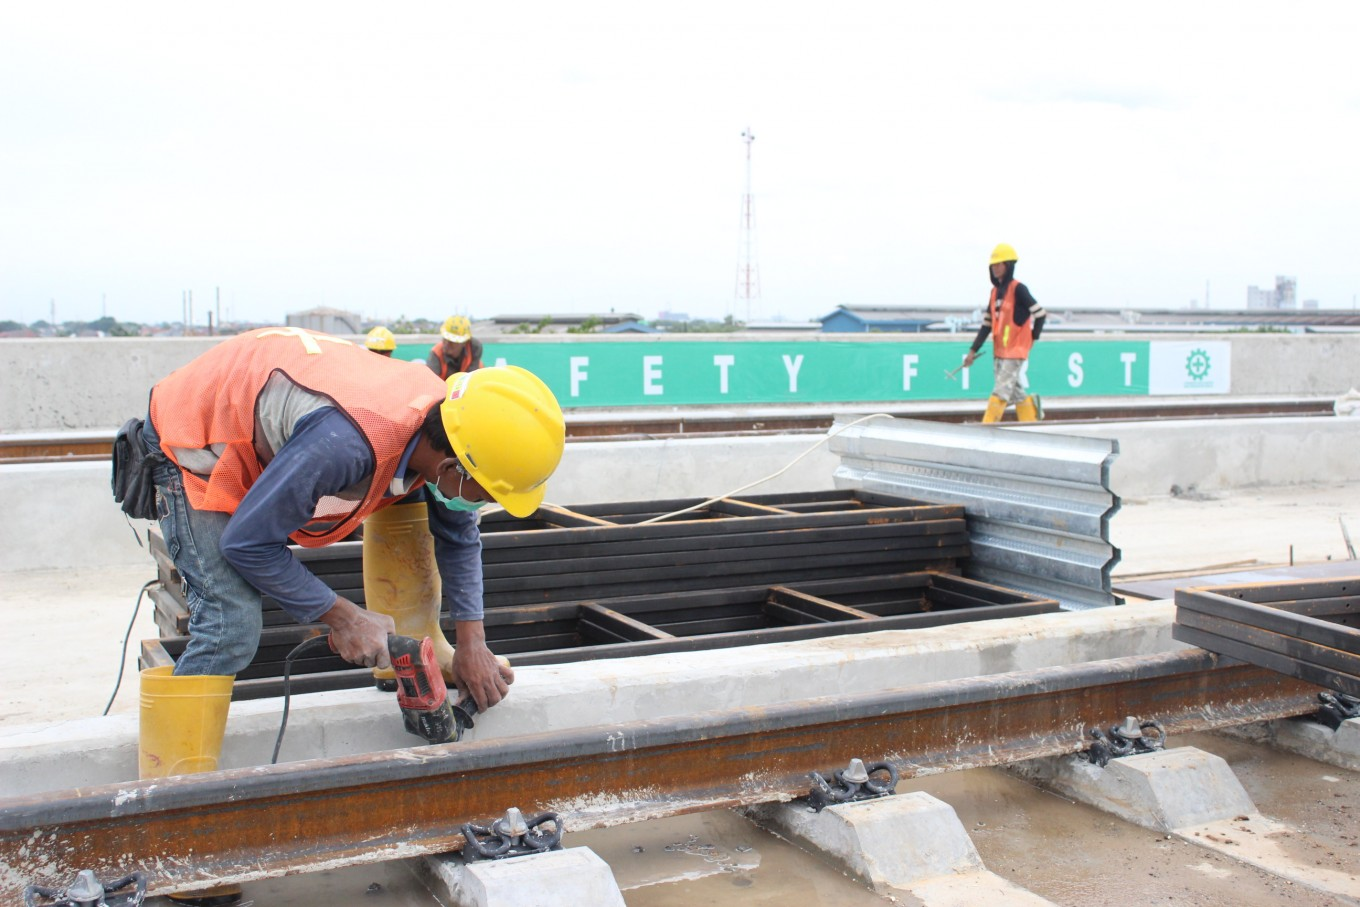 Development of LRT stations in final stage